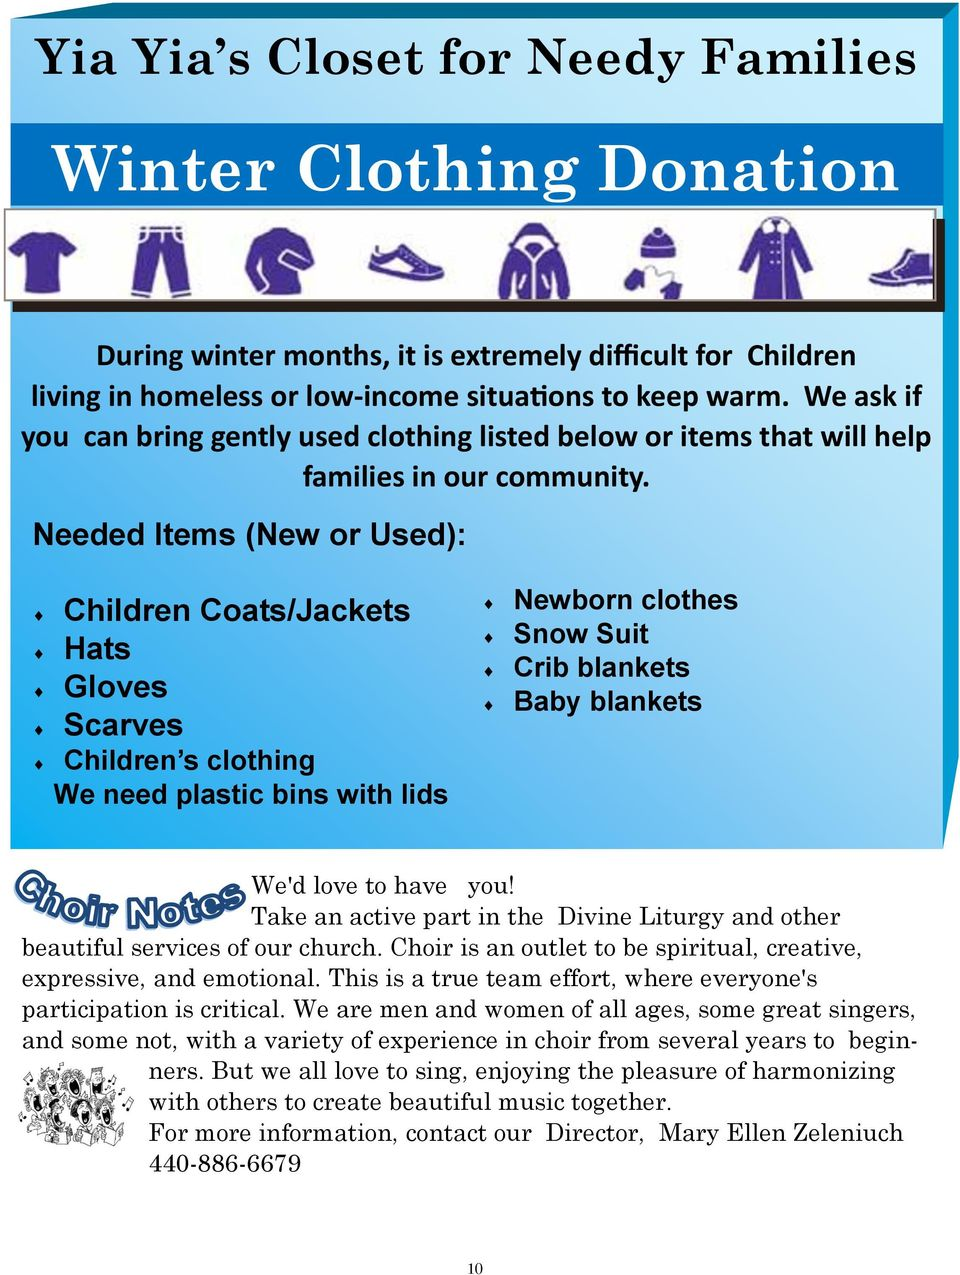 Needed Items (New or Used): Children Coats/Jackets Hats Gloves Scarves Children s clothing We need plastic bins with lids Newborn clothes Snow Suit Crib blankets Baby blankets We'd love to have you!